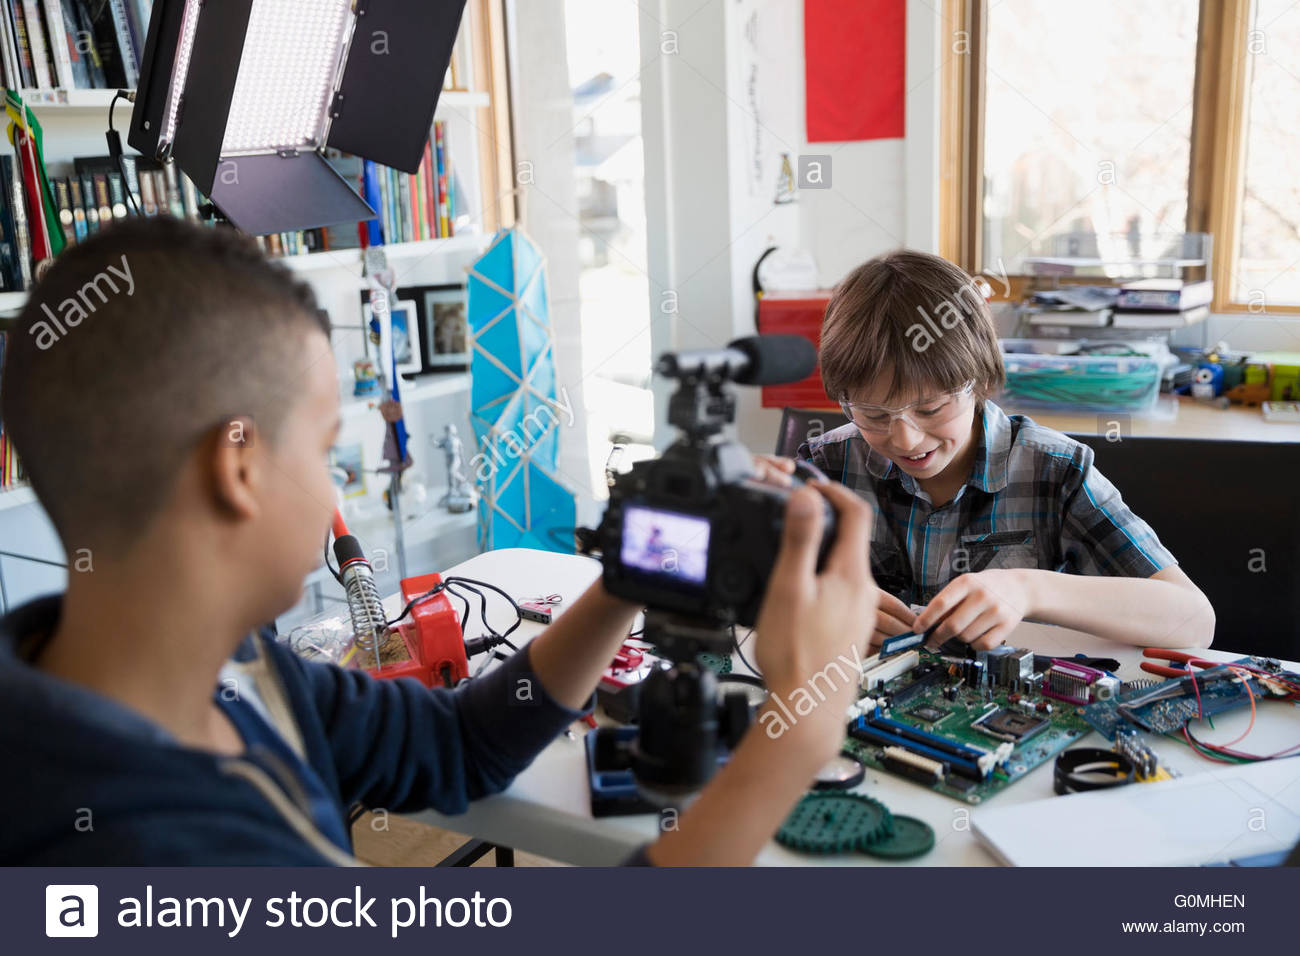 Boys Videotaping Circuit Board Assembly In Bedroom Stock Photo Hobby